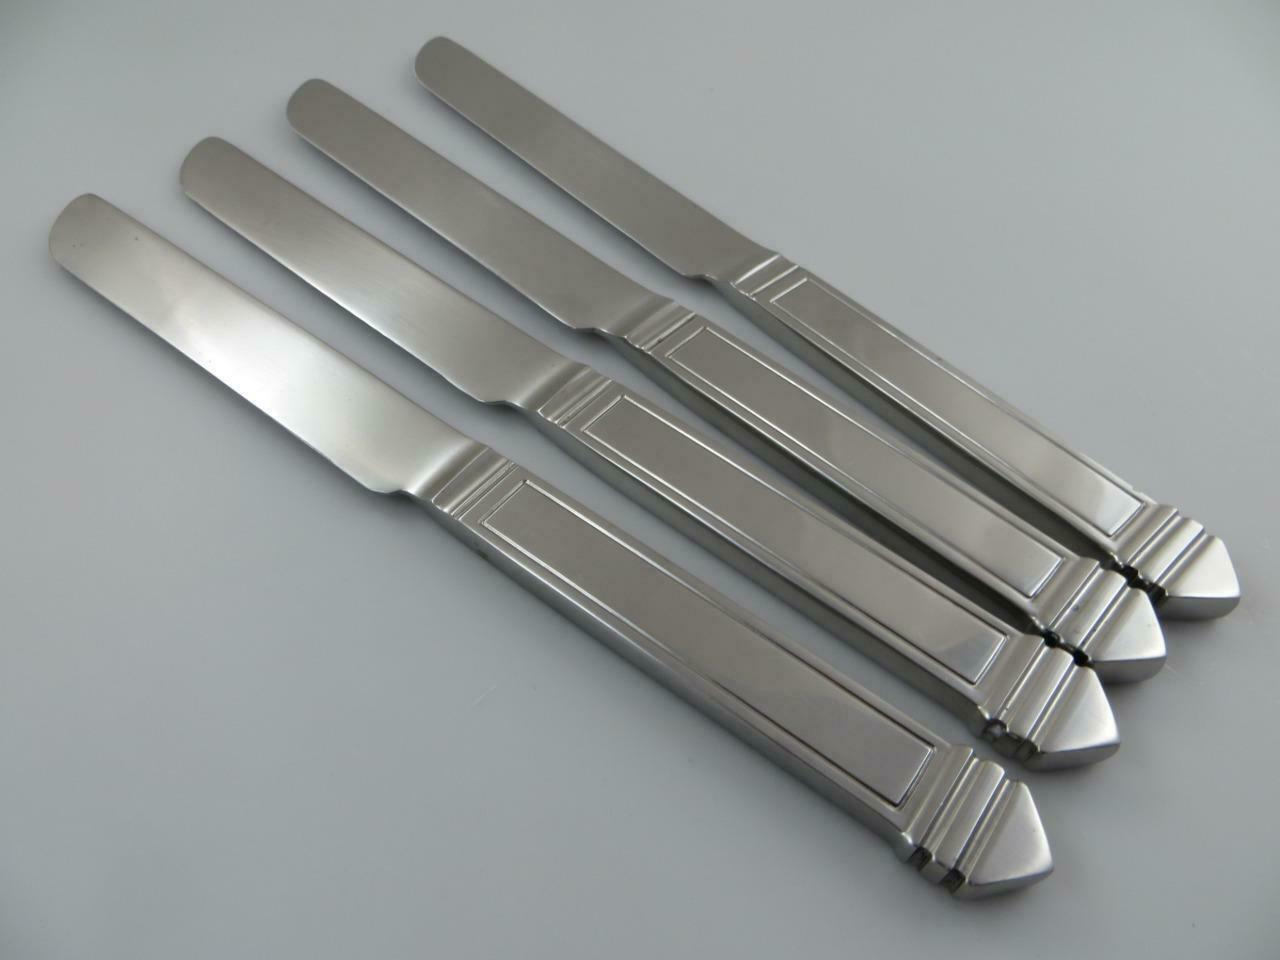 4 Dinner Dinner Dinner Knives PYRAMID Dansk Japan Stainless Steel Flatware Satin Finish 00540e